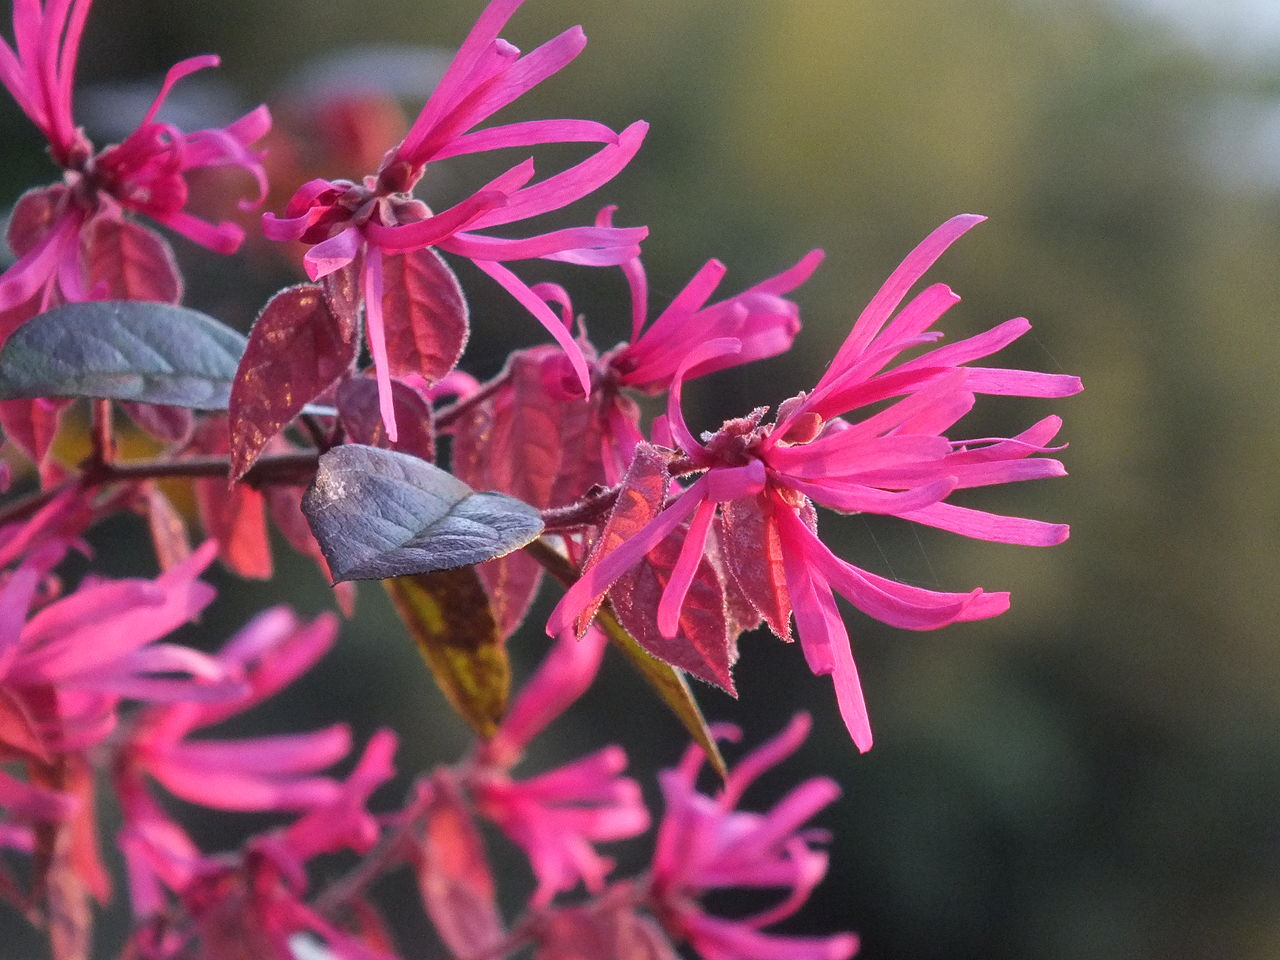 About Chinese Fringe Plants Tips For Growing Loropetalum